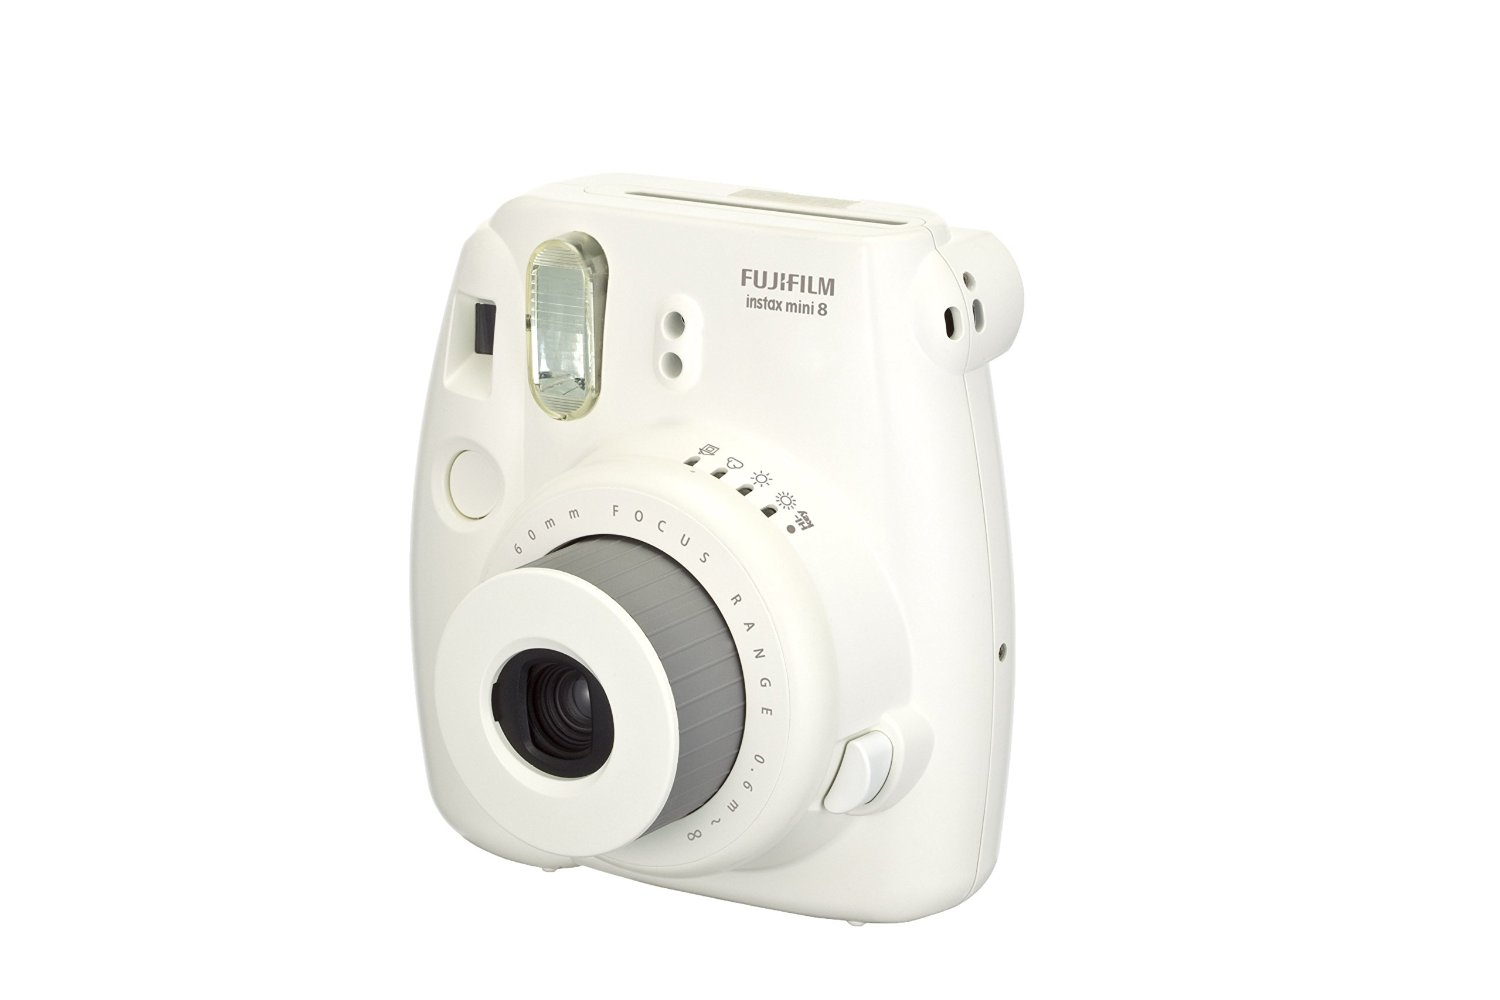 White Fujifilm INSTAX Mini camera